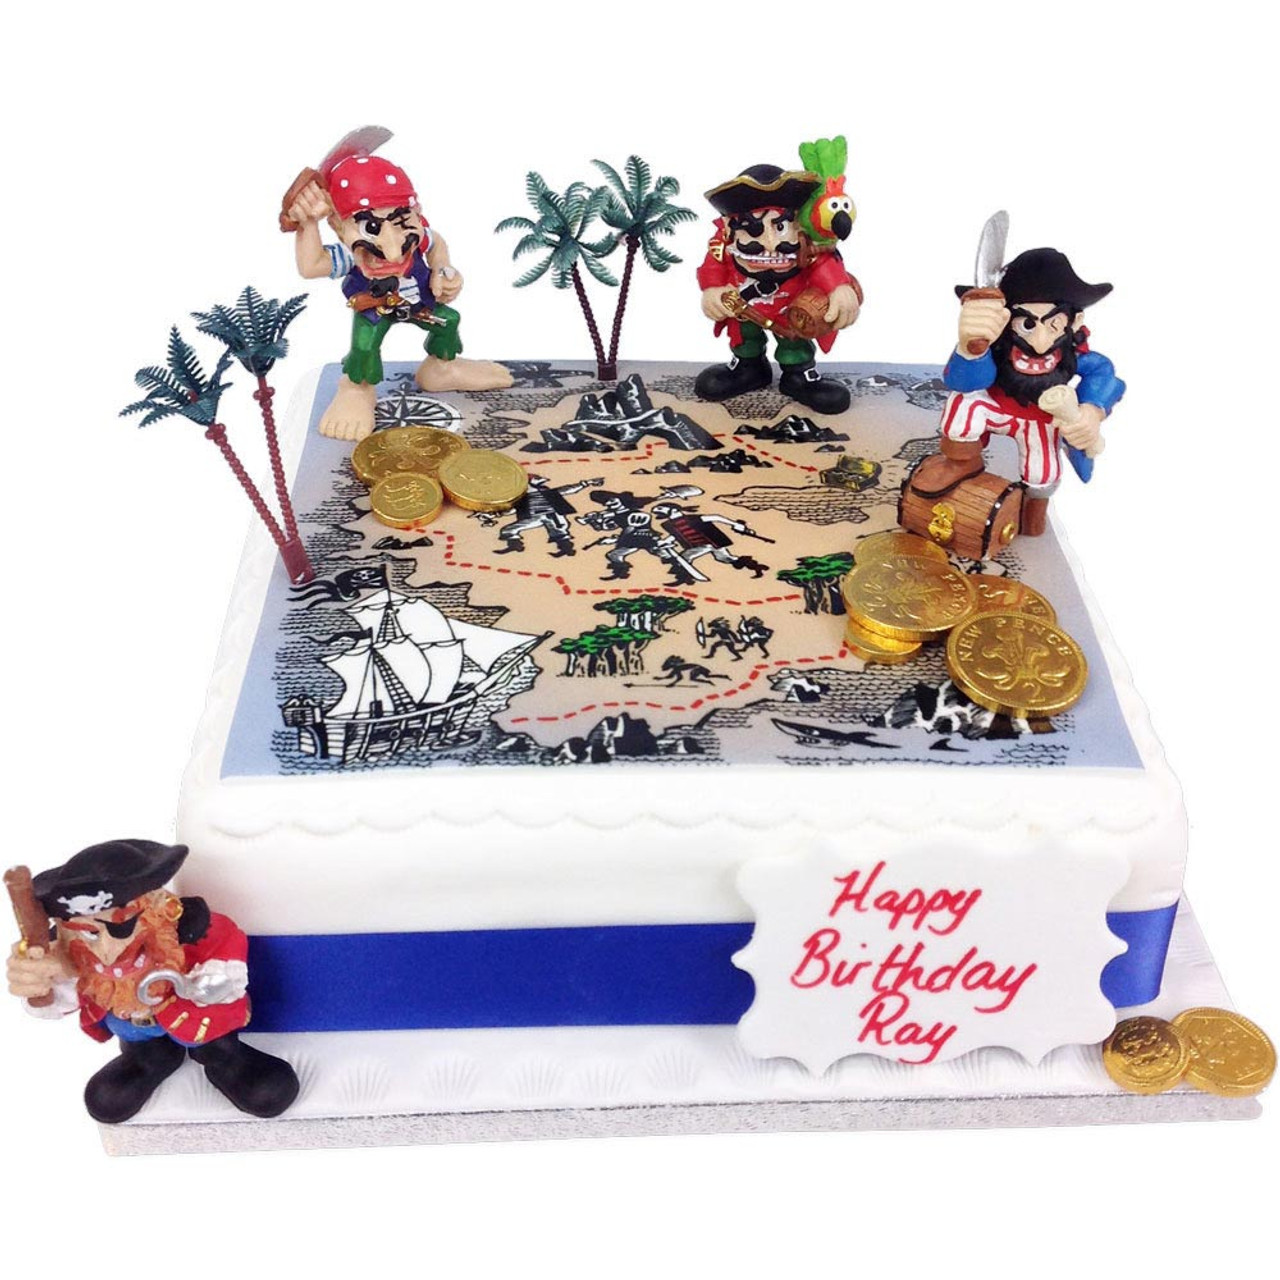 Order birthday celebration cakes personalised delivered pirate birthday cake sciox Choice Image